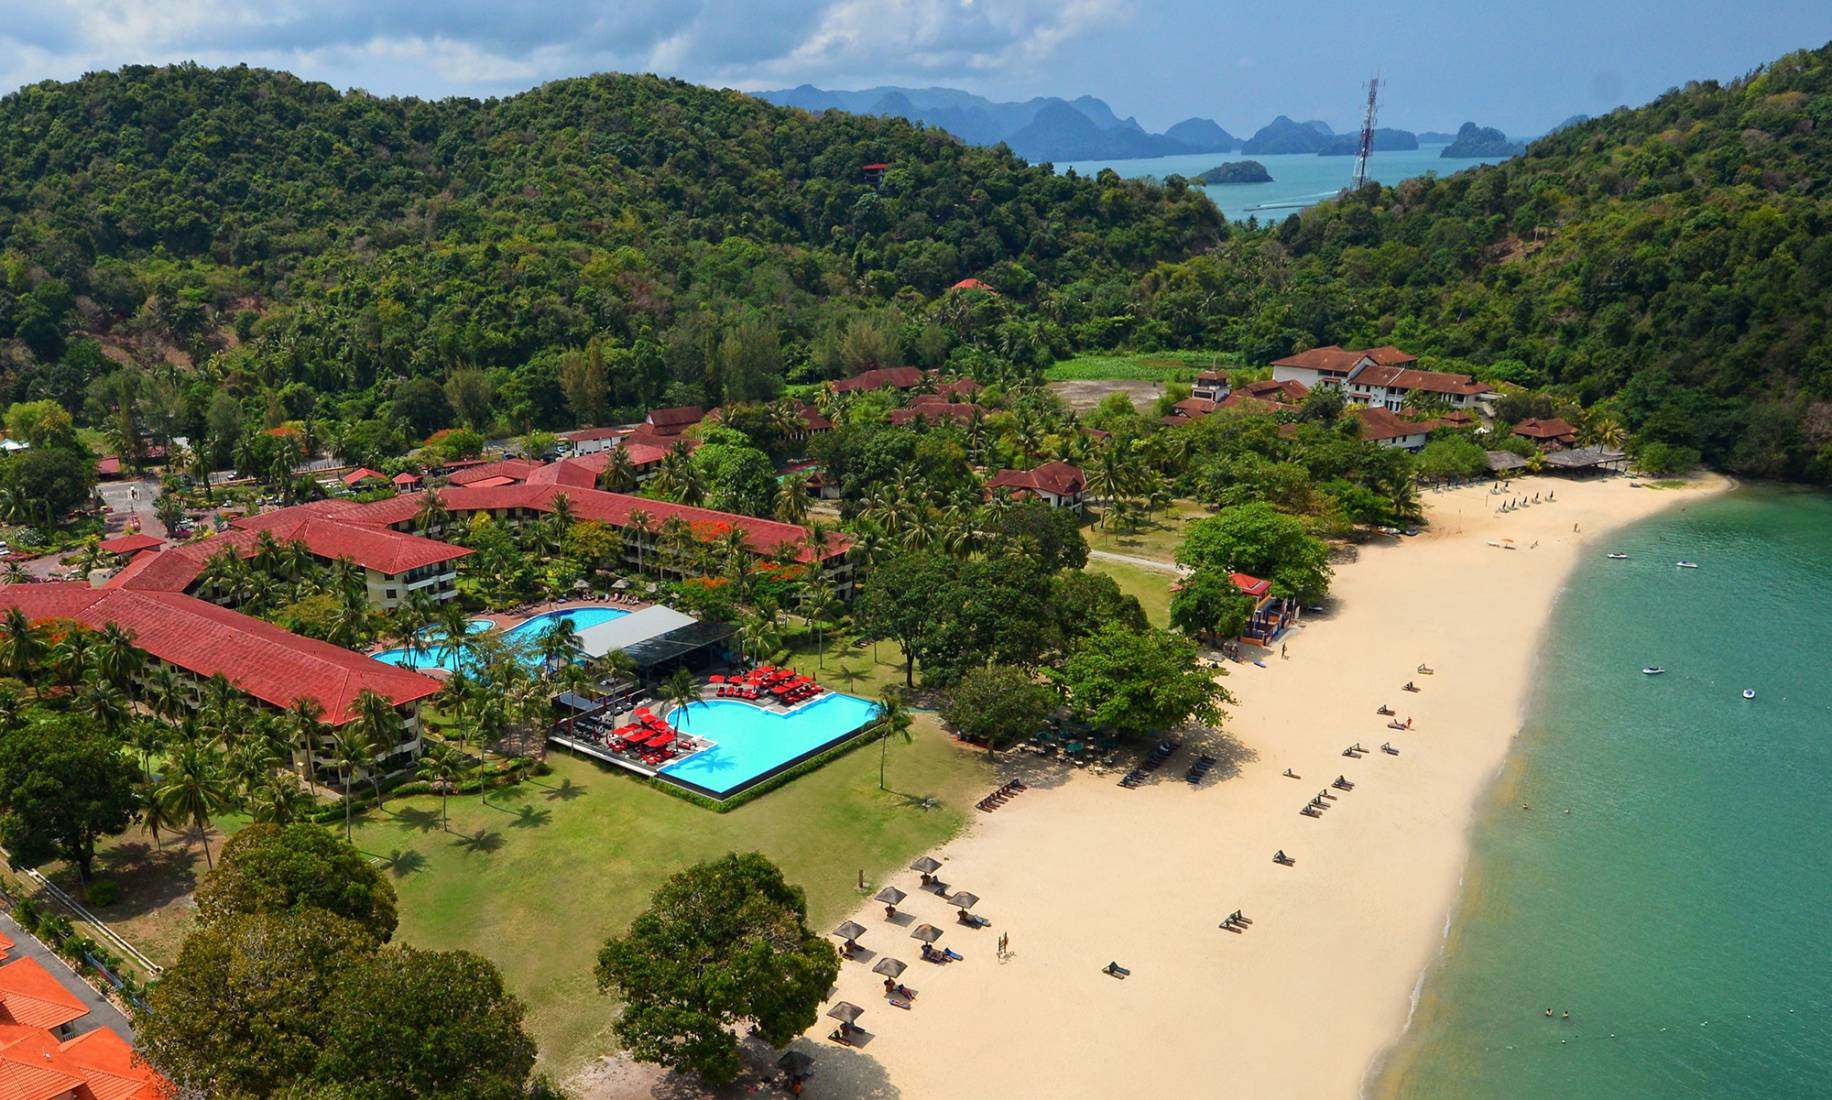 holiday in langkawi Best family hotels in langkawi on tripadvisor: find traveller reviews, candid photos, and prices for 93 family hotels in langkawi, malaysia.